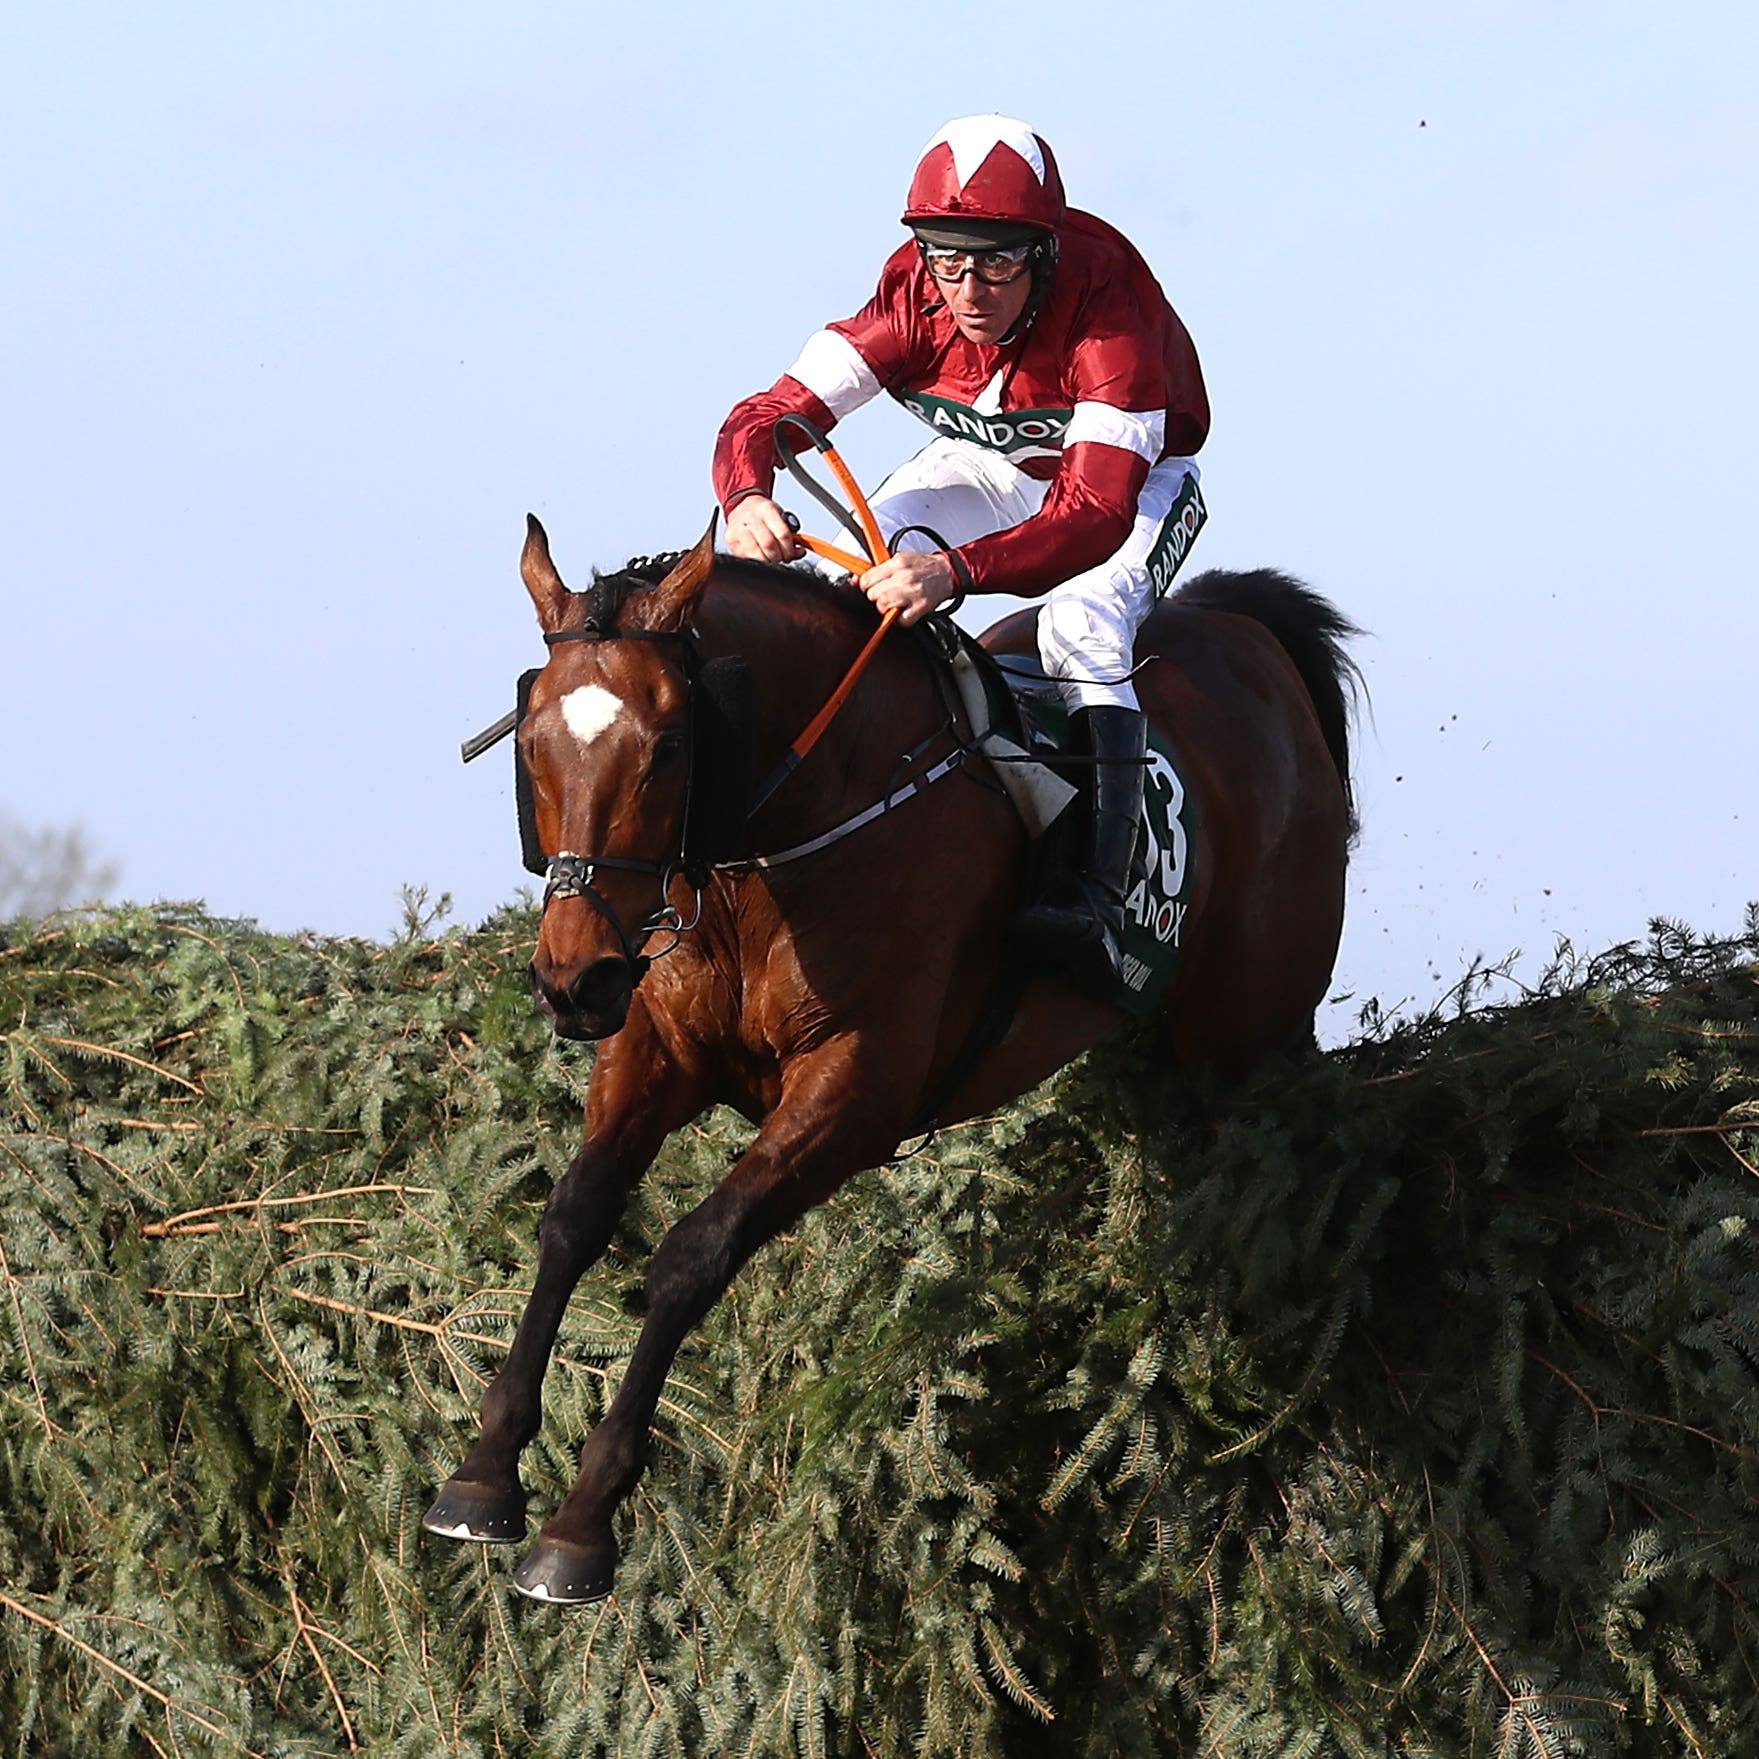 Tiger Roll on his way to winning the Grand National at Aintree